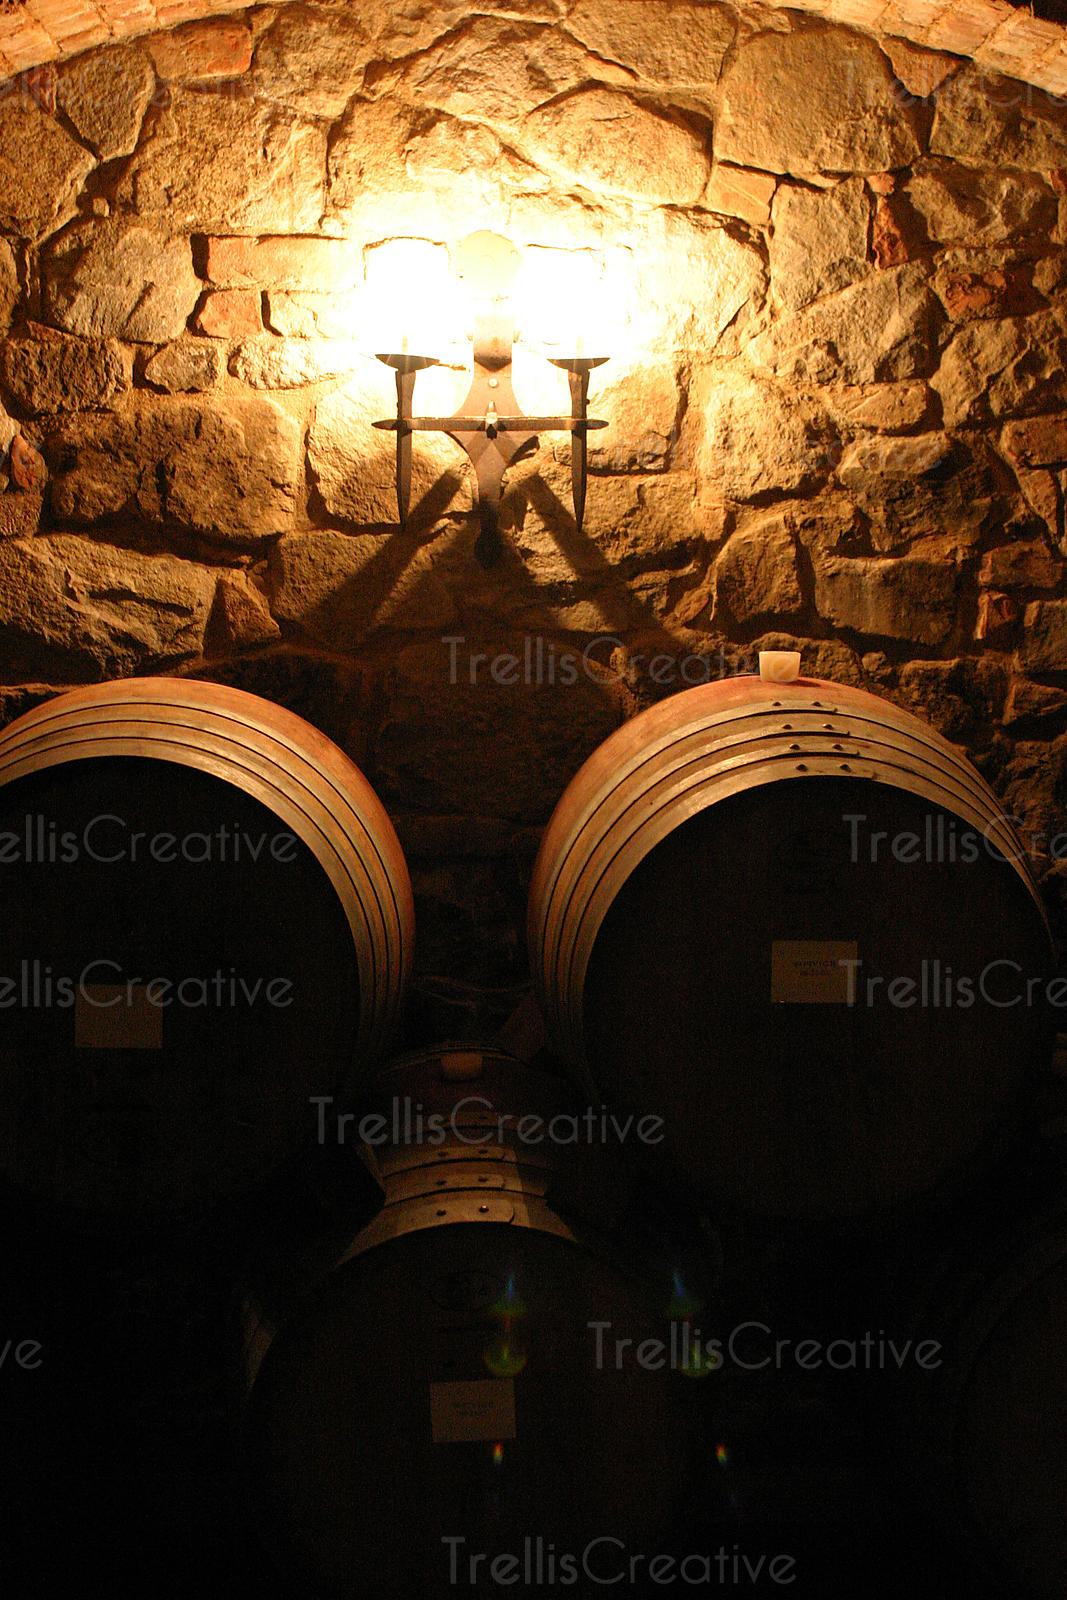 Oak wine barrels stacked up in an old winery cave